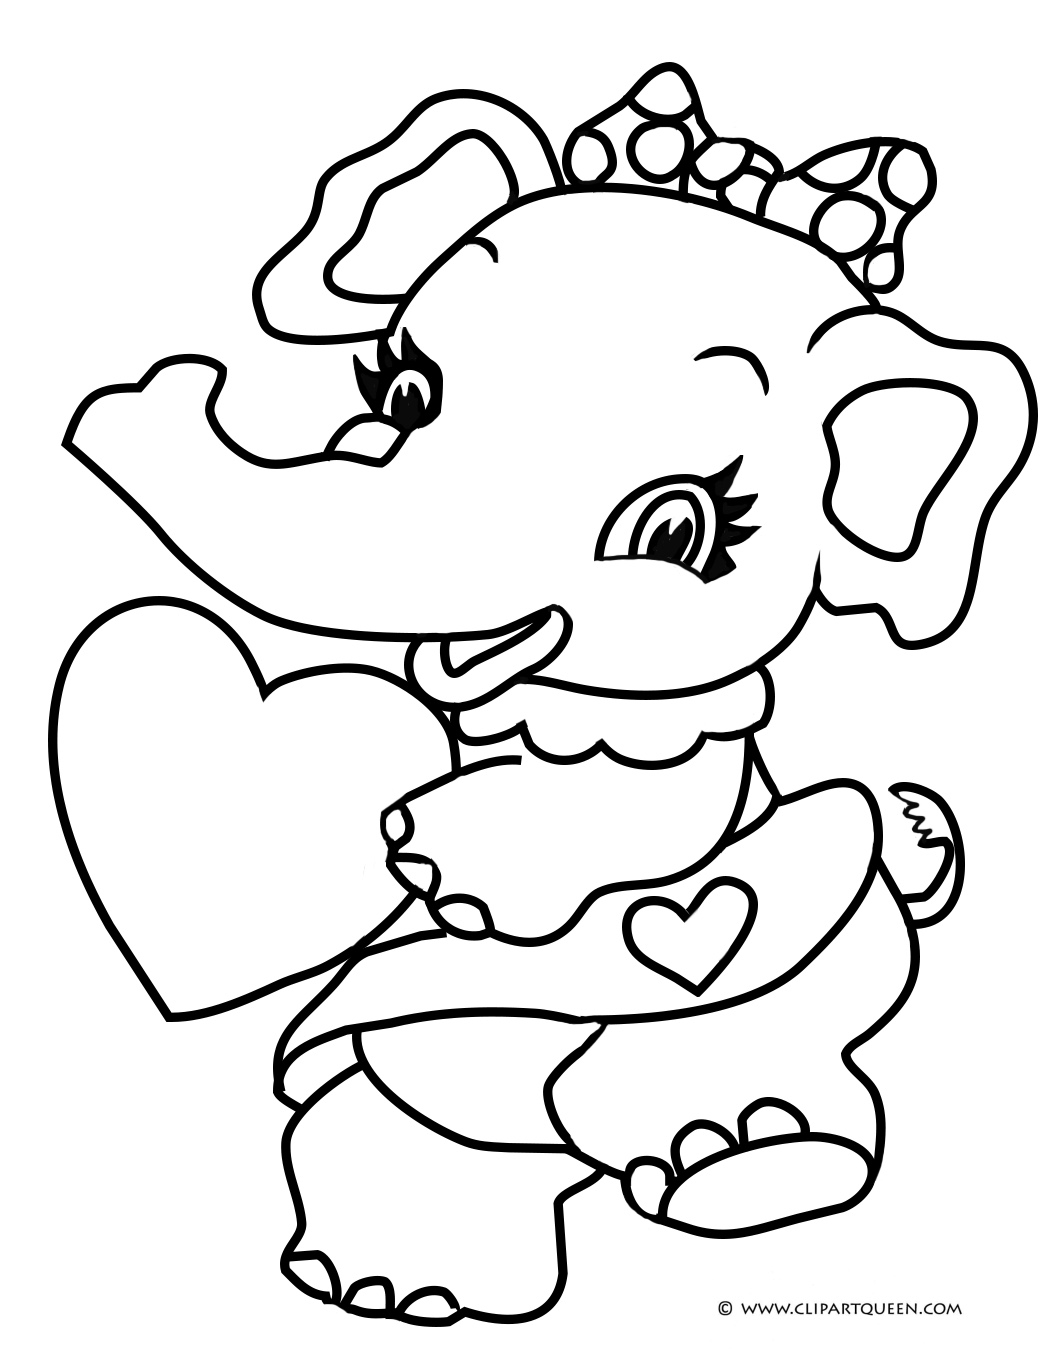 13 Valentine 39 s Day coloring pages